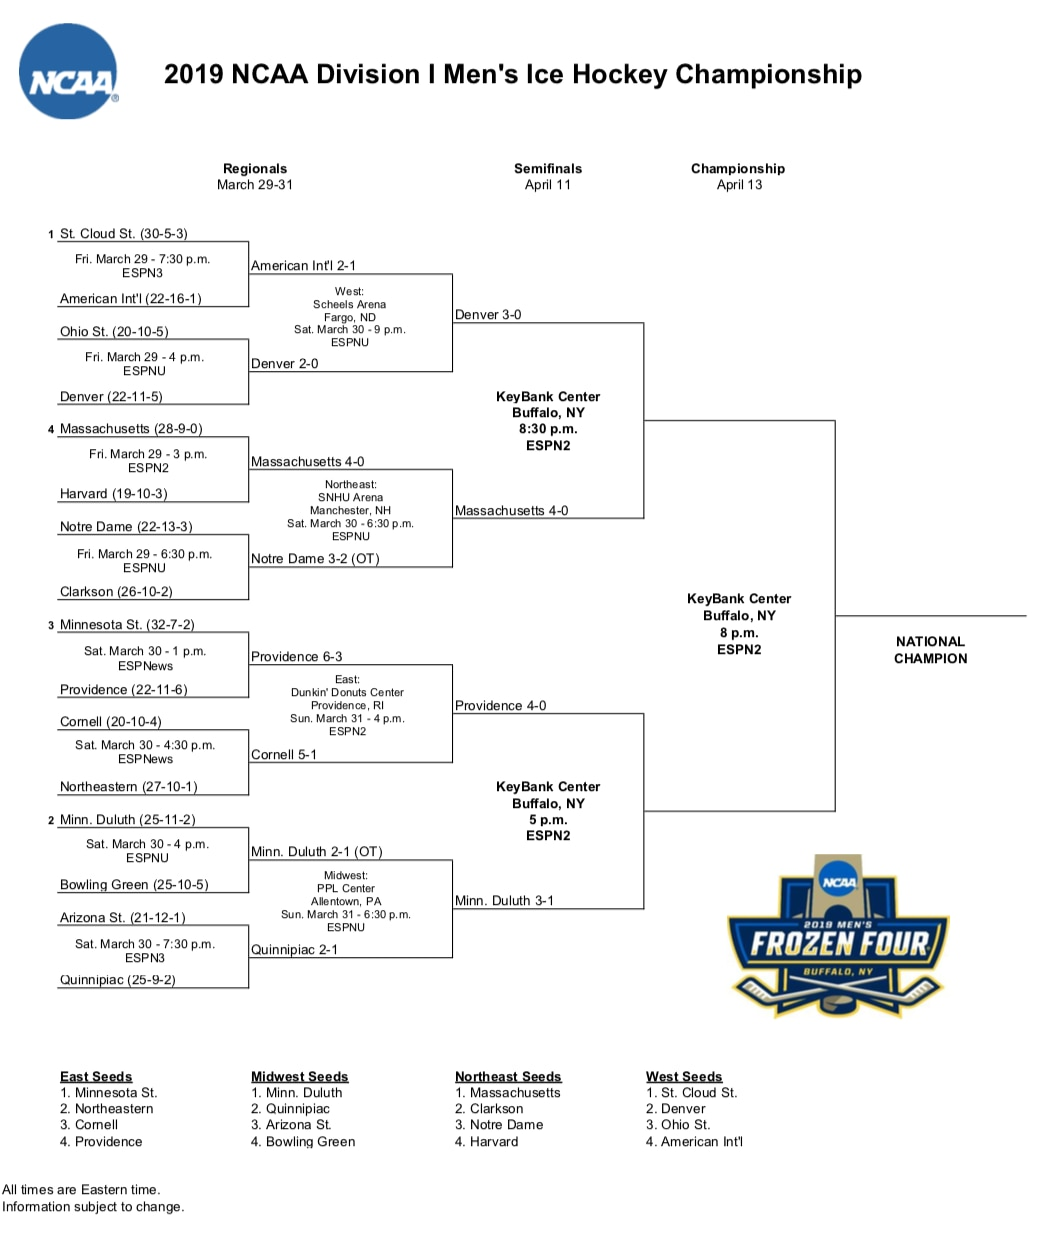 image regarding The Man in the Arena Printable named Frozen 4 bracket: Printable 2019 NCAA hockey event